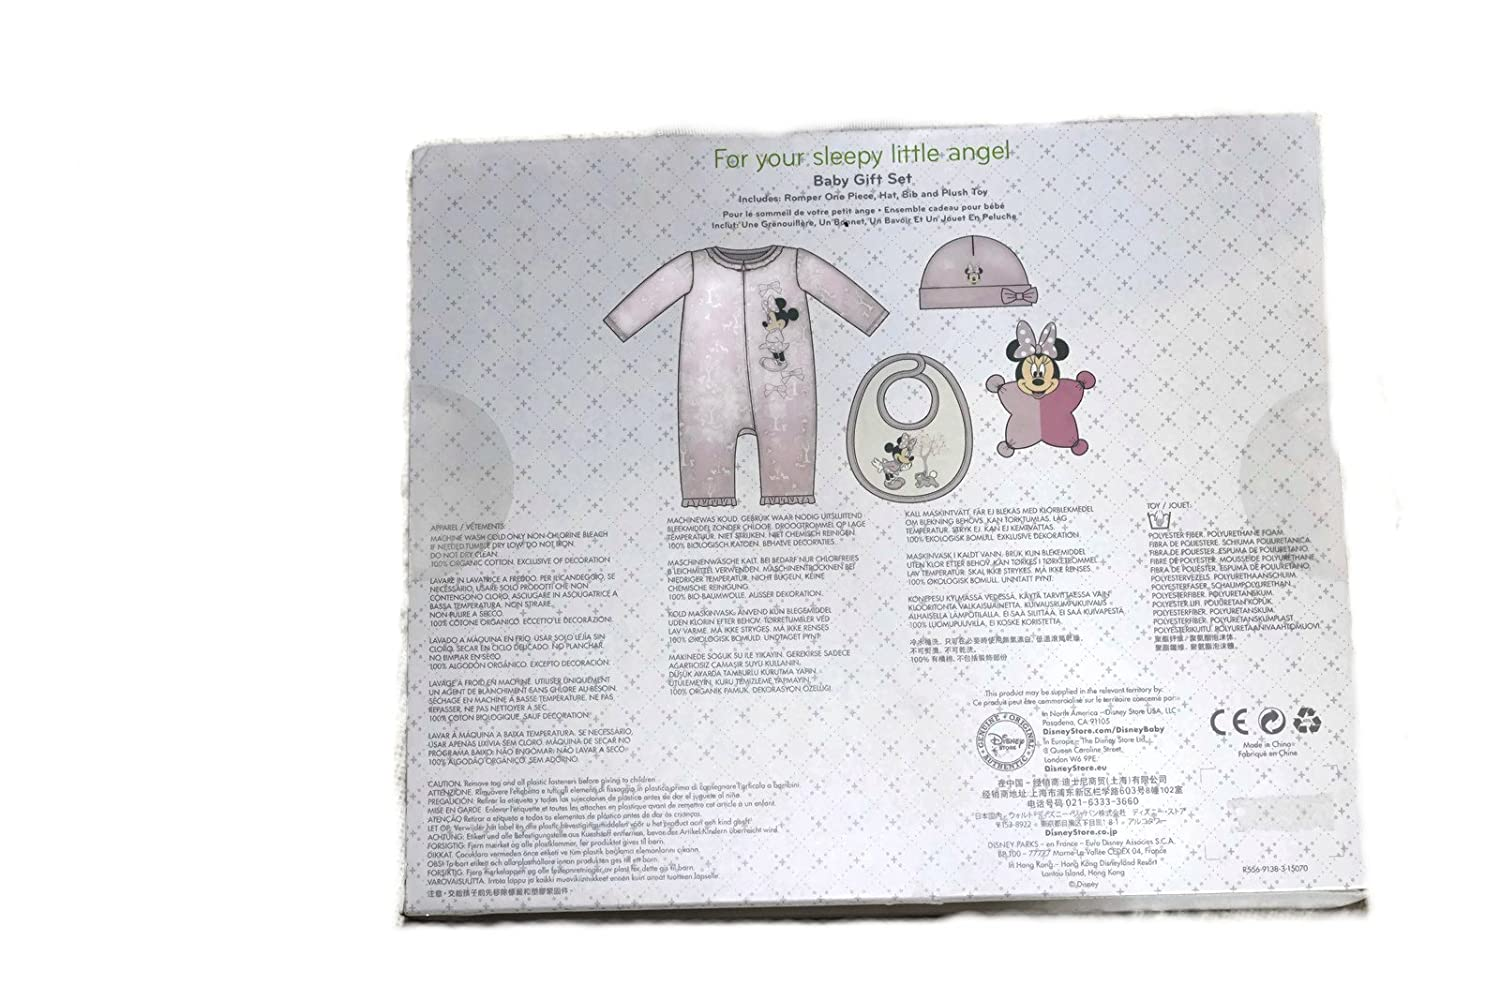 Amazon.com : Disney Store Minnie Mouse Gift Set For Baby 0-3 months : Baby